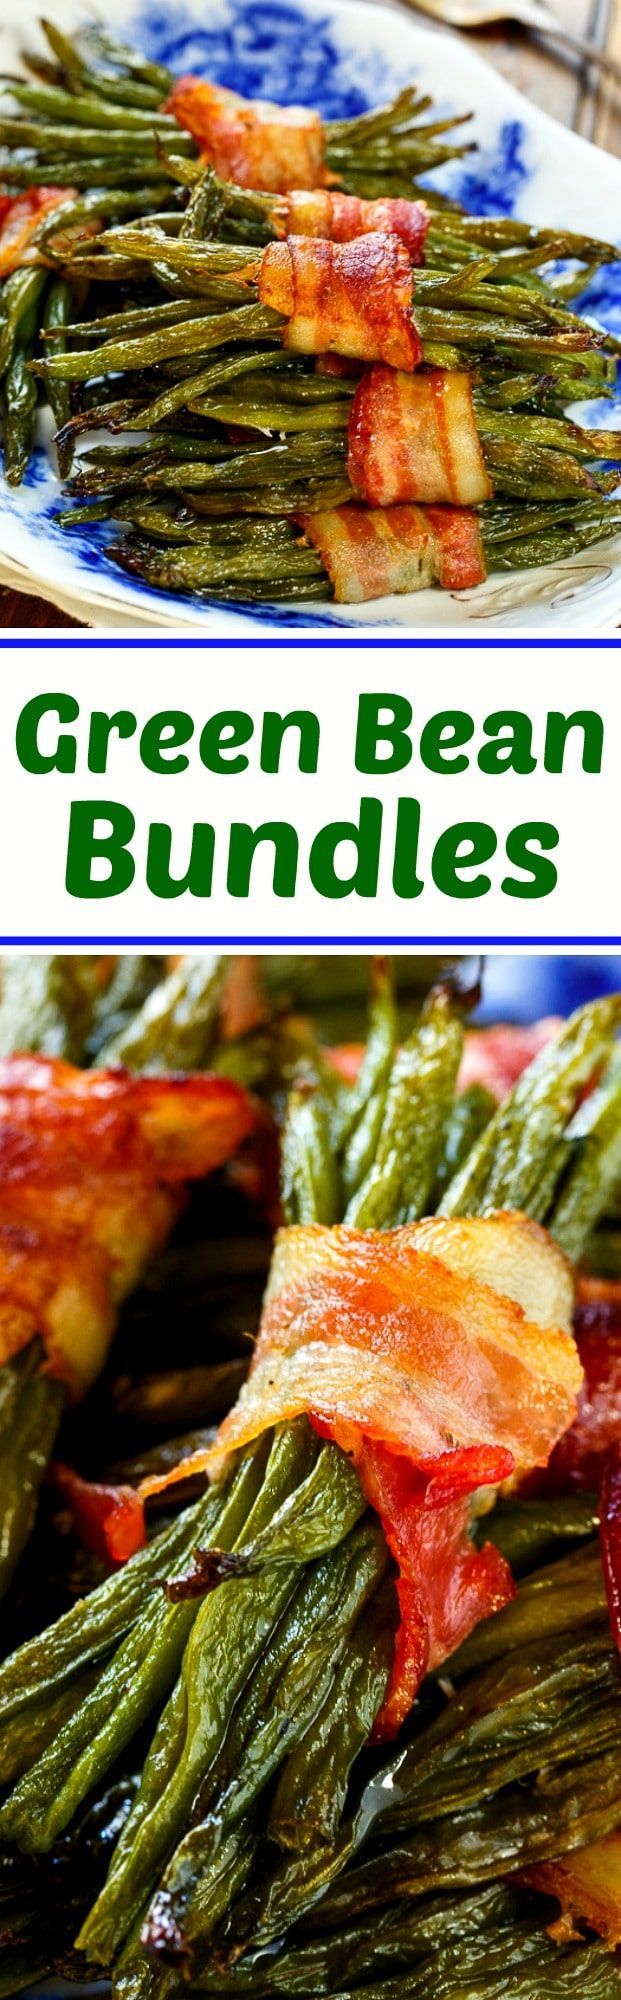 Green Bean Bundles wrapped in bacon- great for the holidays!